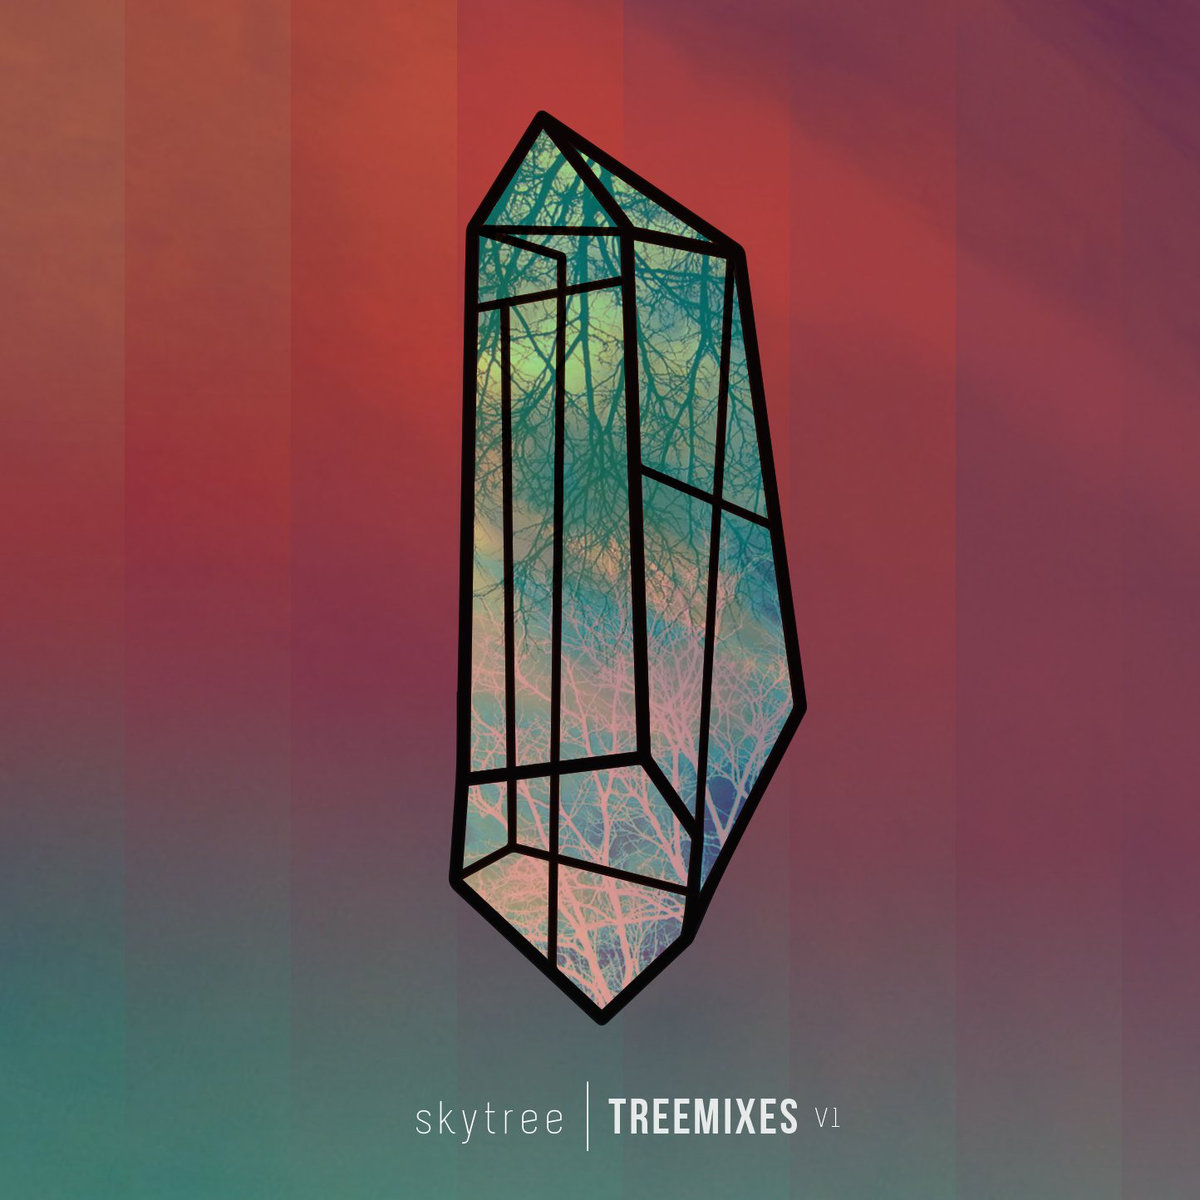 Skytree - Dreamtime (Sina. remix) @ 'Treemixes V1' album (Austin)